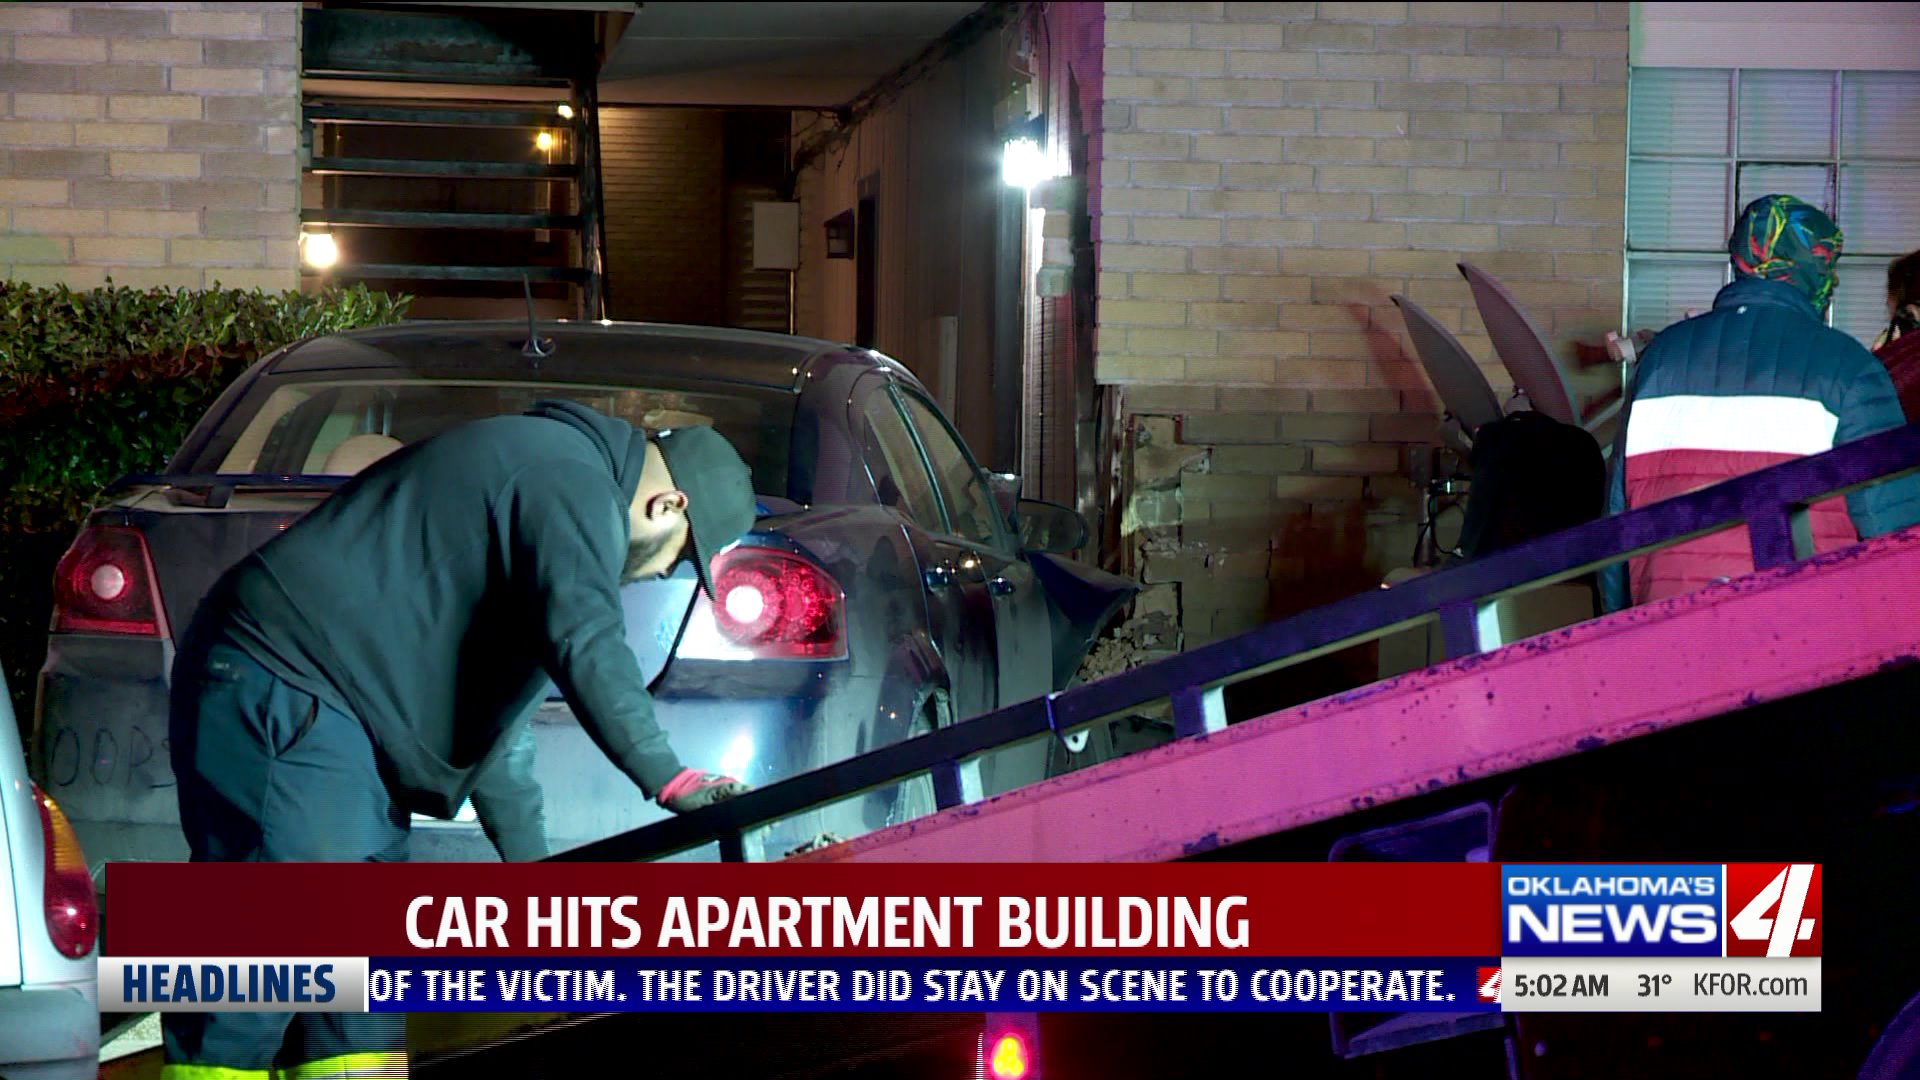 Car crashes into apartment building